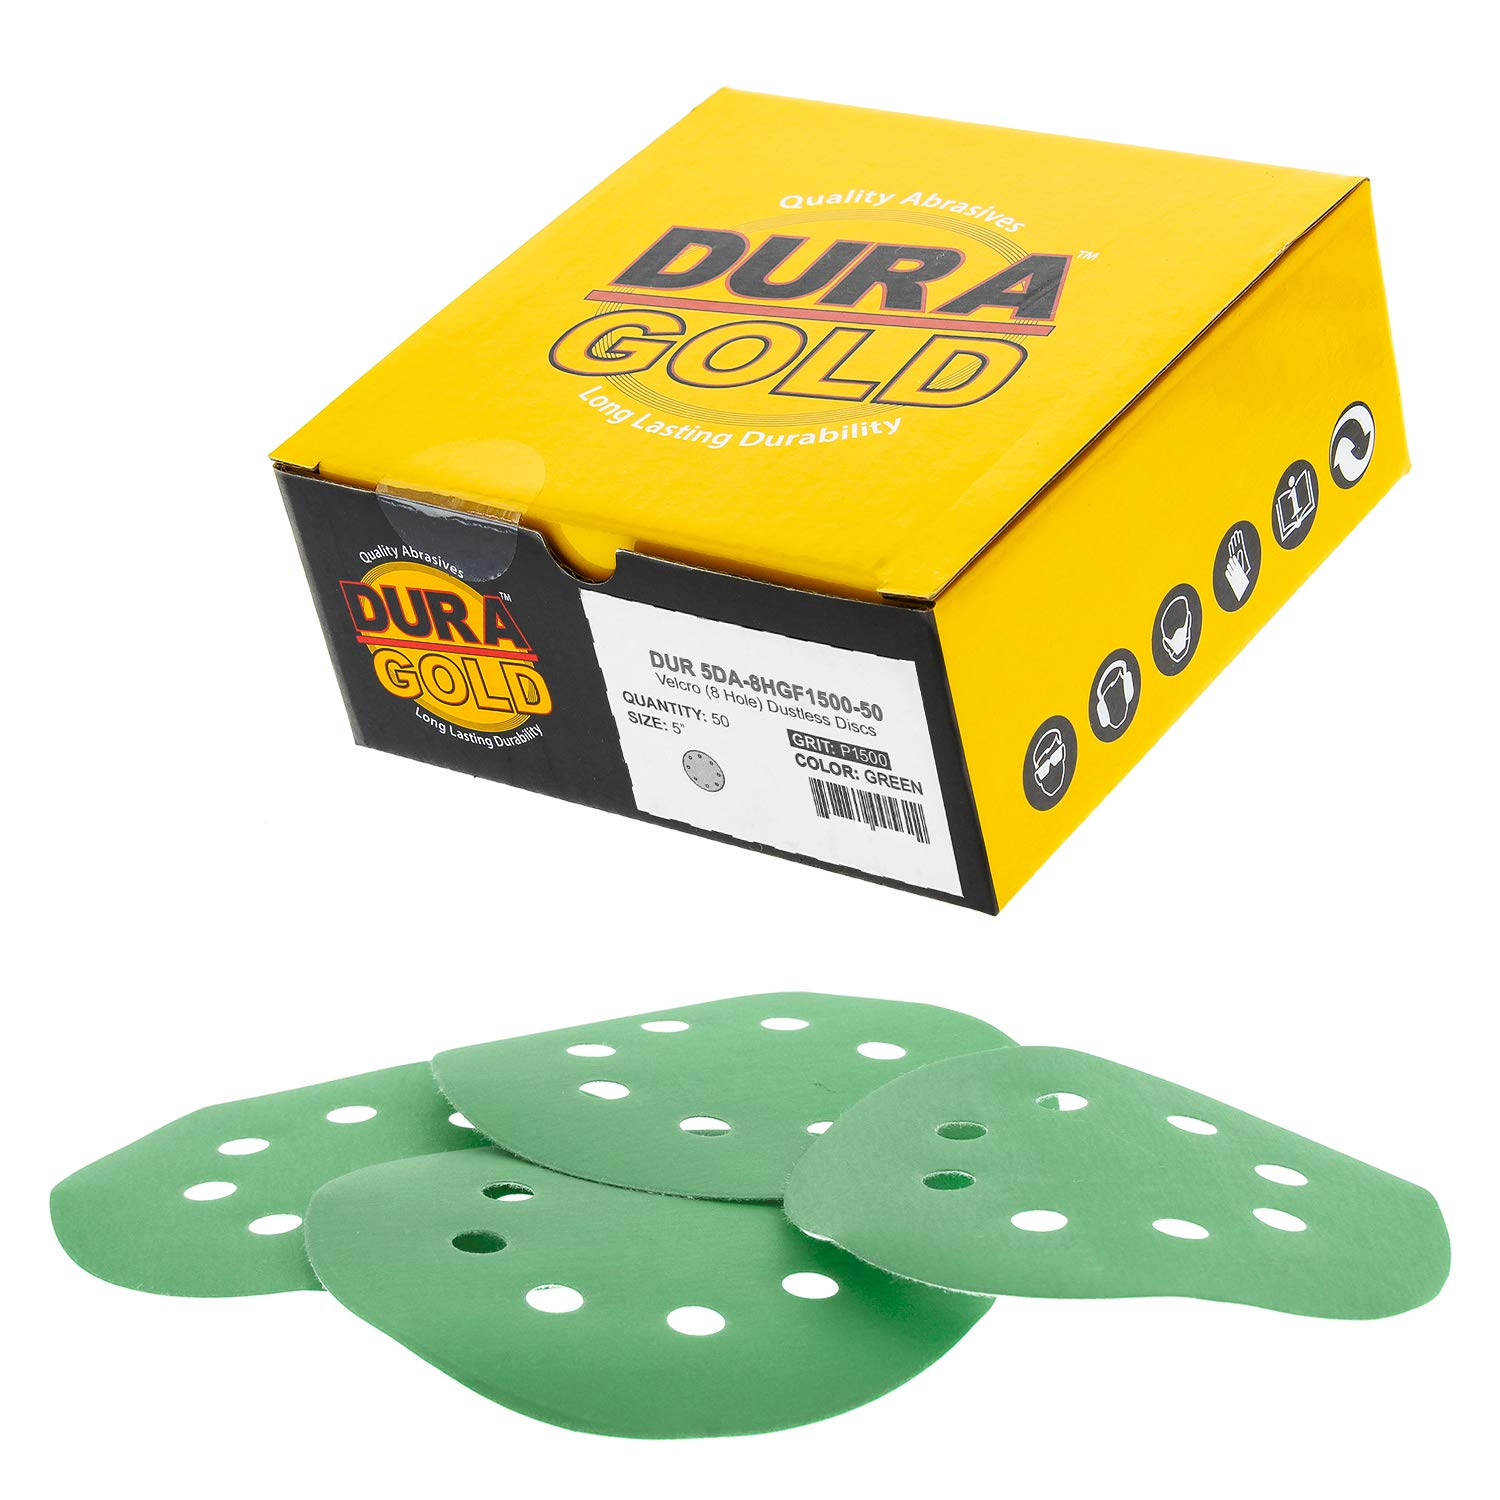 Dura-Gold - Premium - 1500 Grit - 5'' Green Film Sanding Discs - 8-Hole Dustless Hook and Loop for DA Sander - Box of 50 Finishing Sandpaper Discs for Woodworking or Automotive